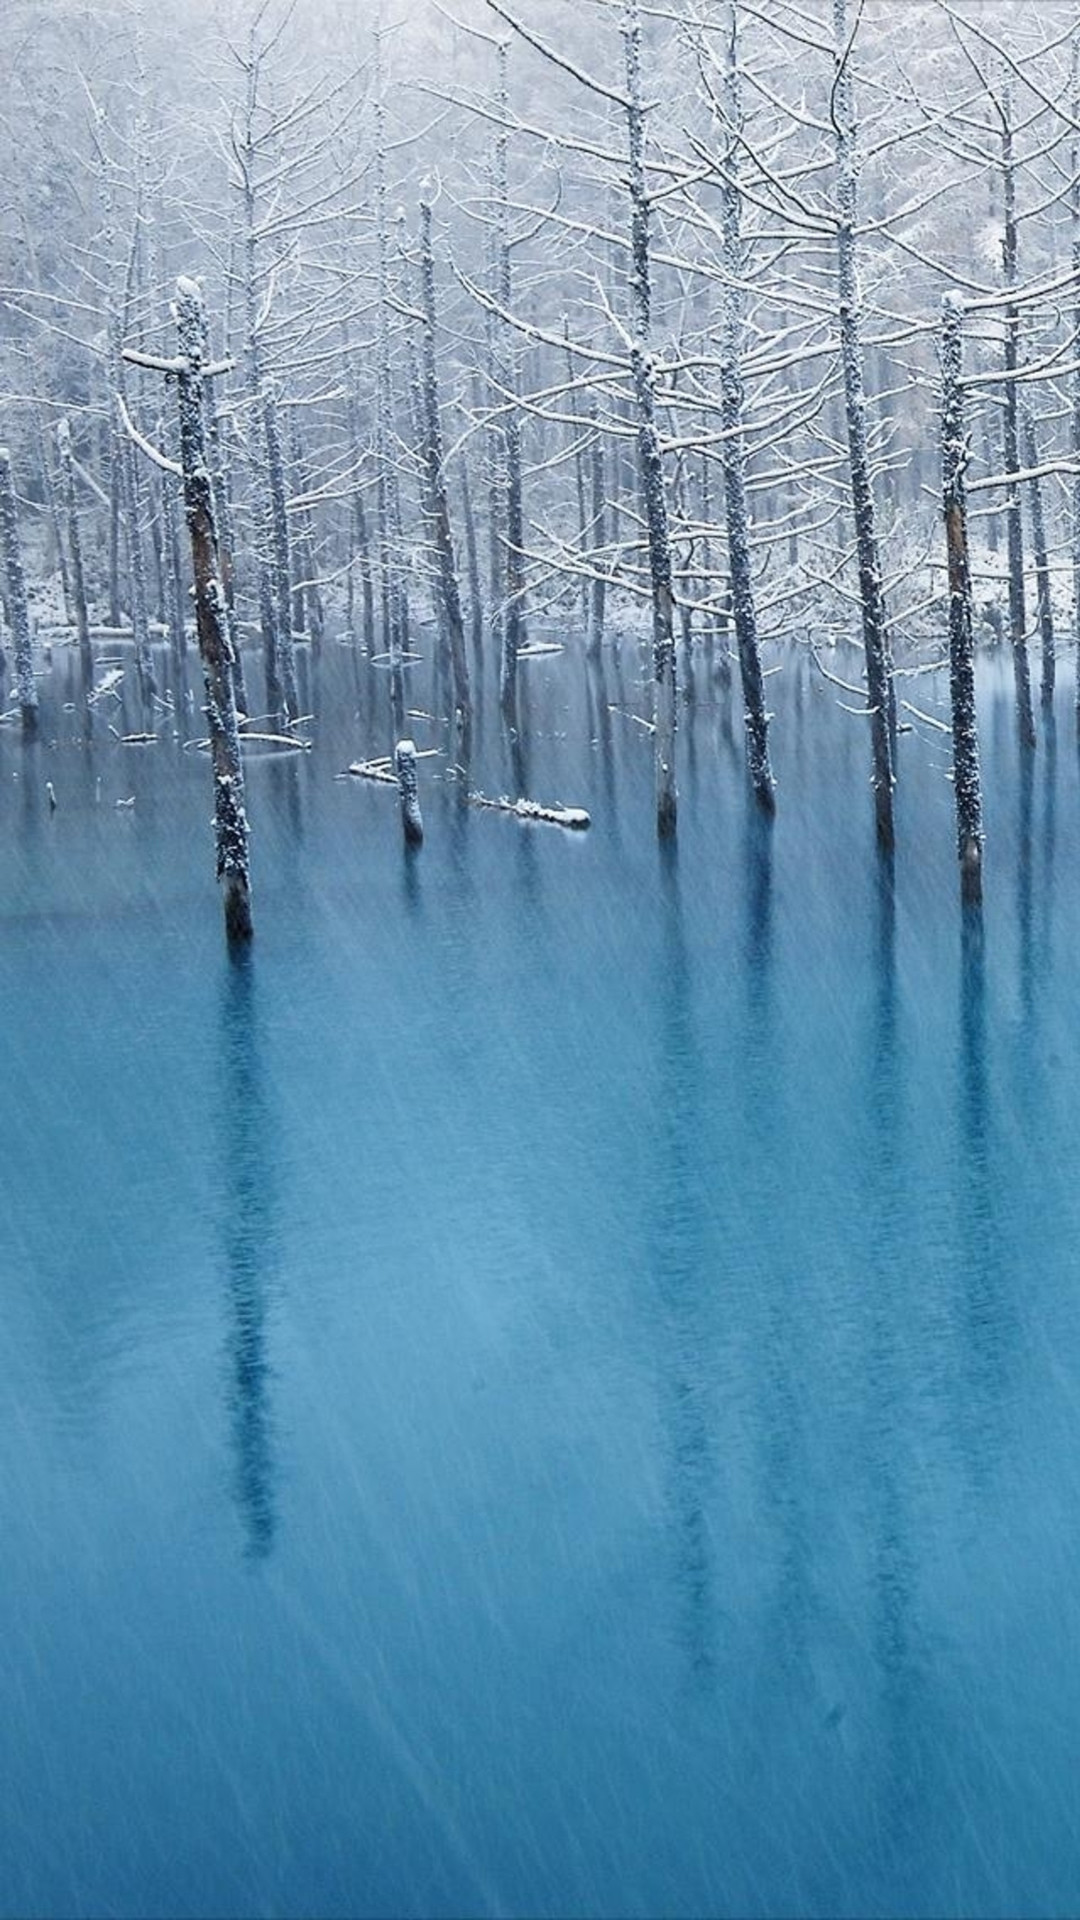 Pure Winter Wither Tree Grove Frozen Lake Landscape